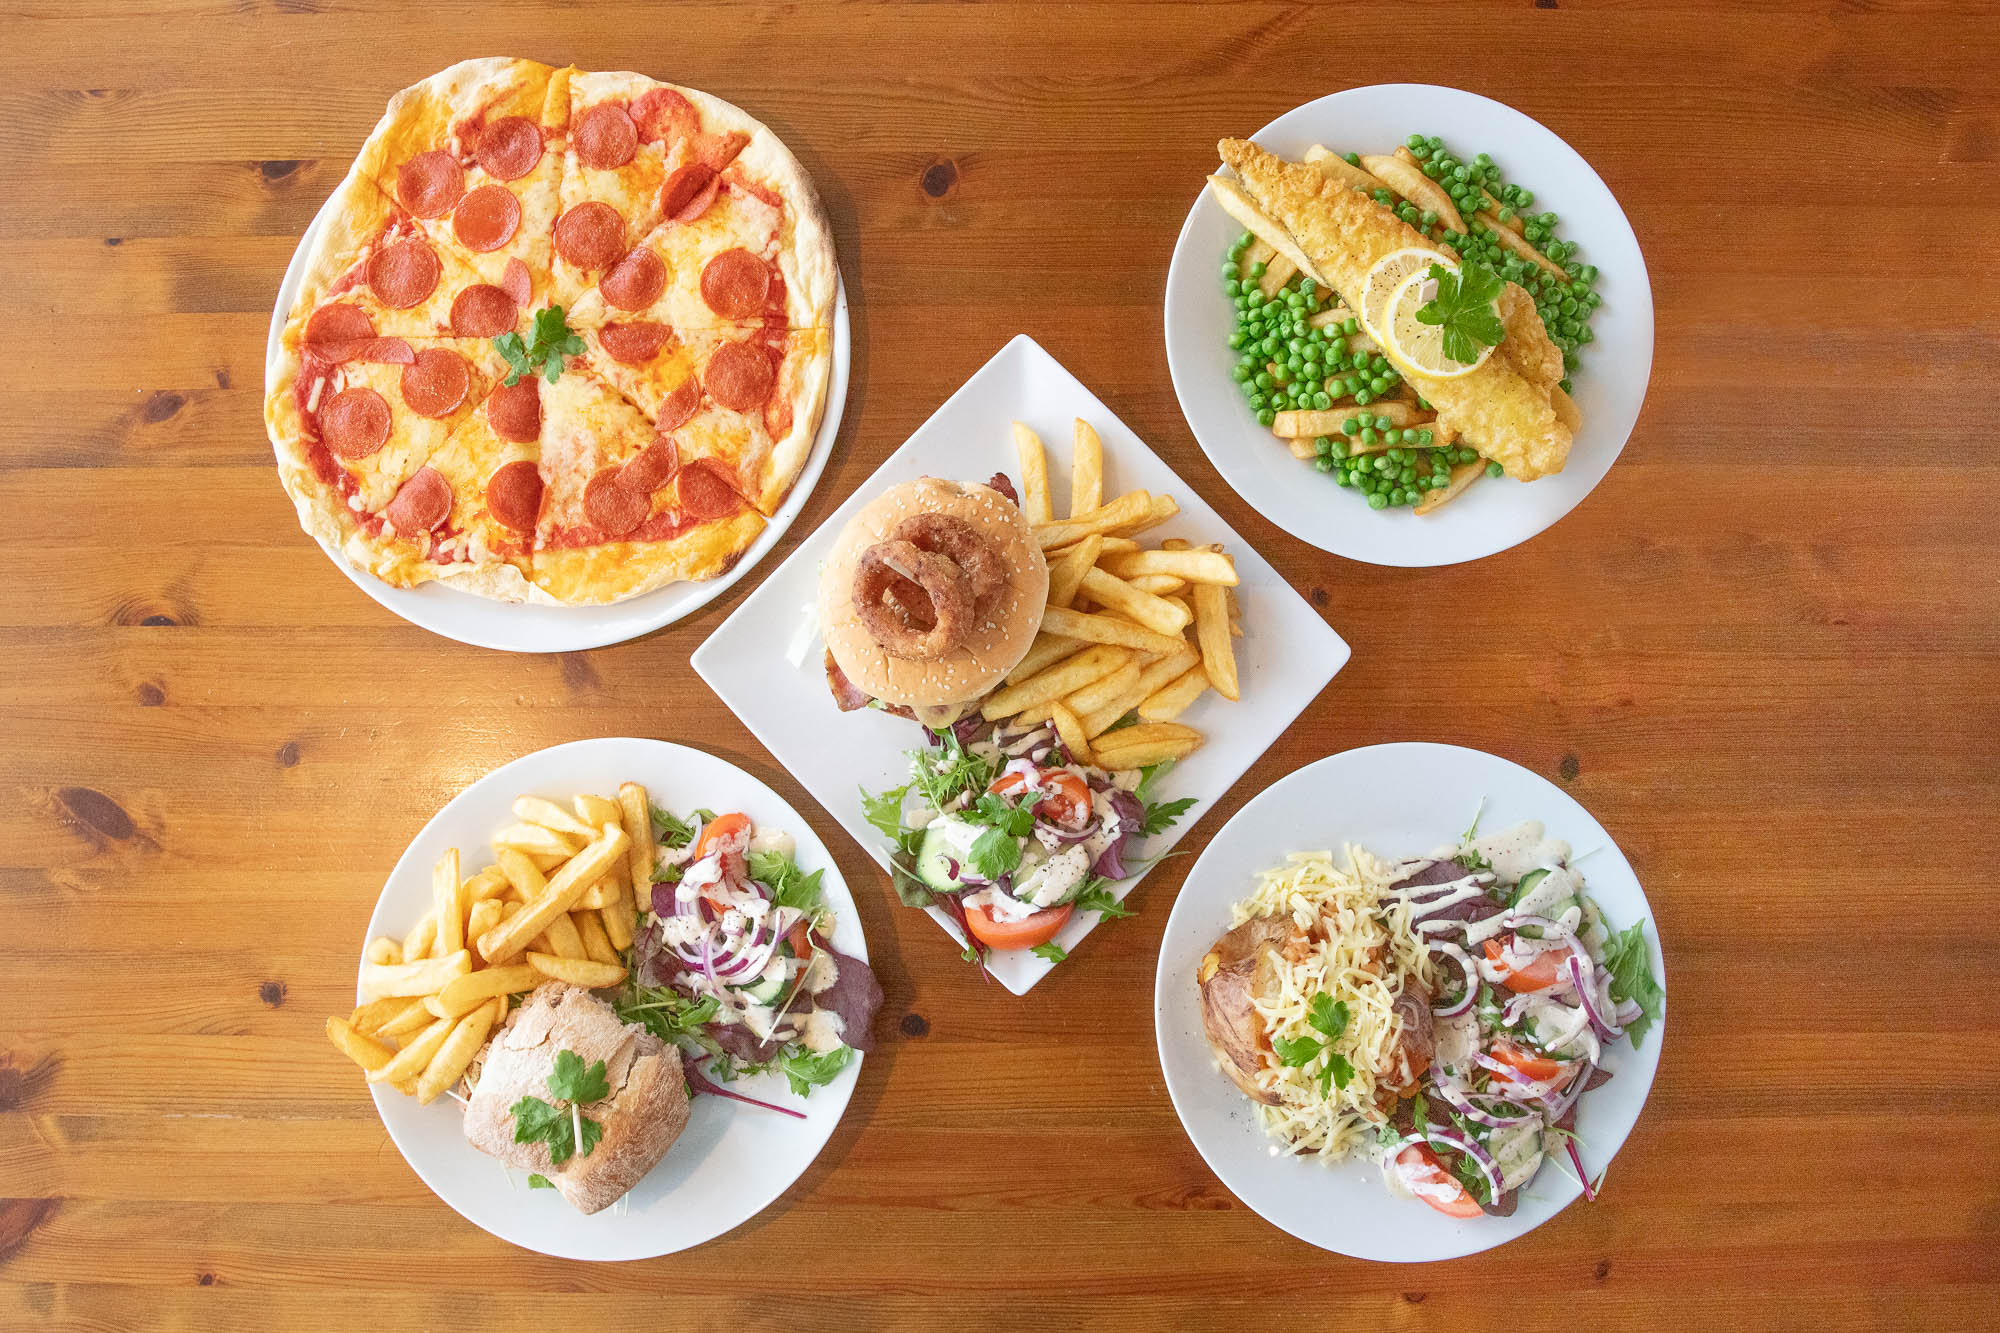 Overhead view of an assortment of dishes